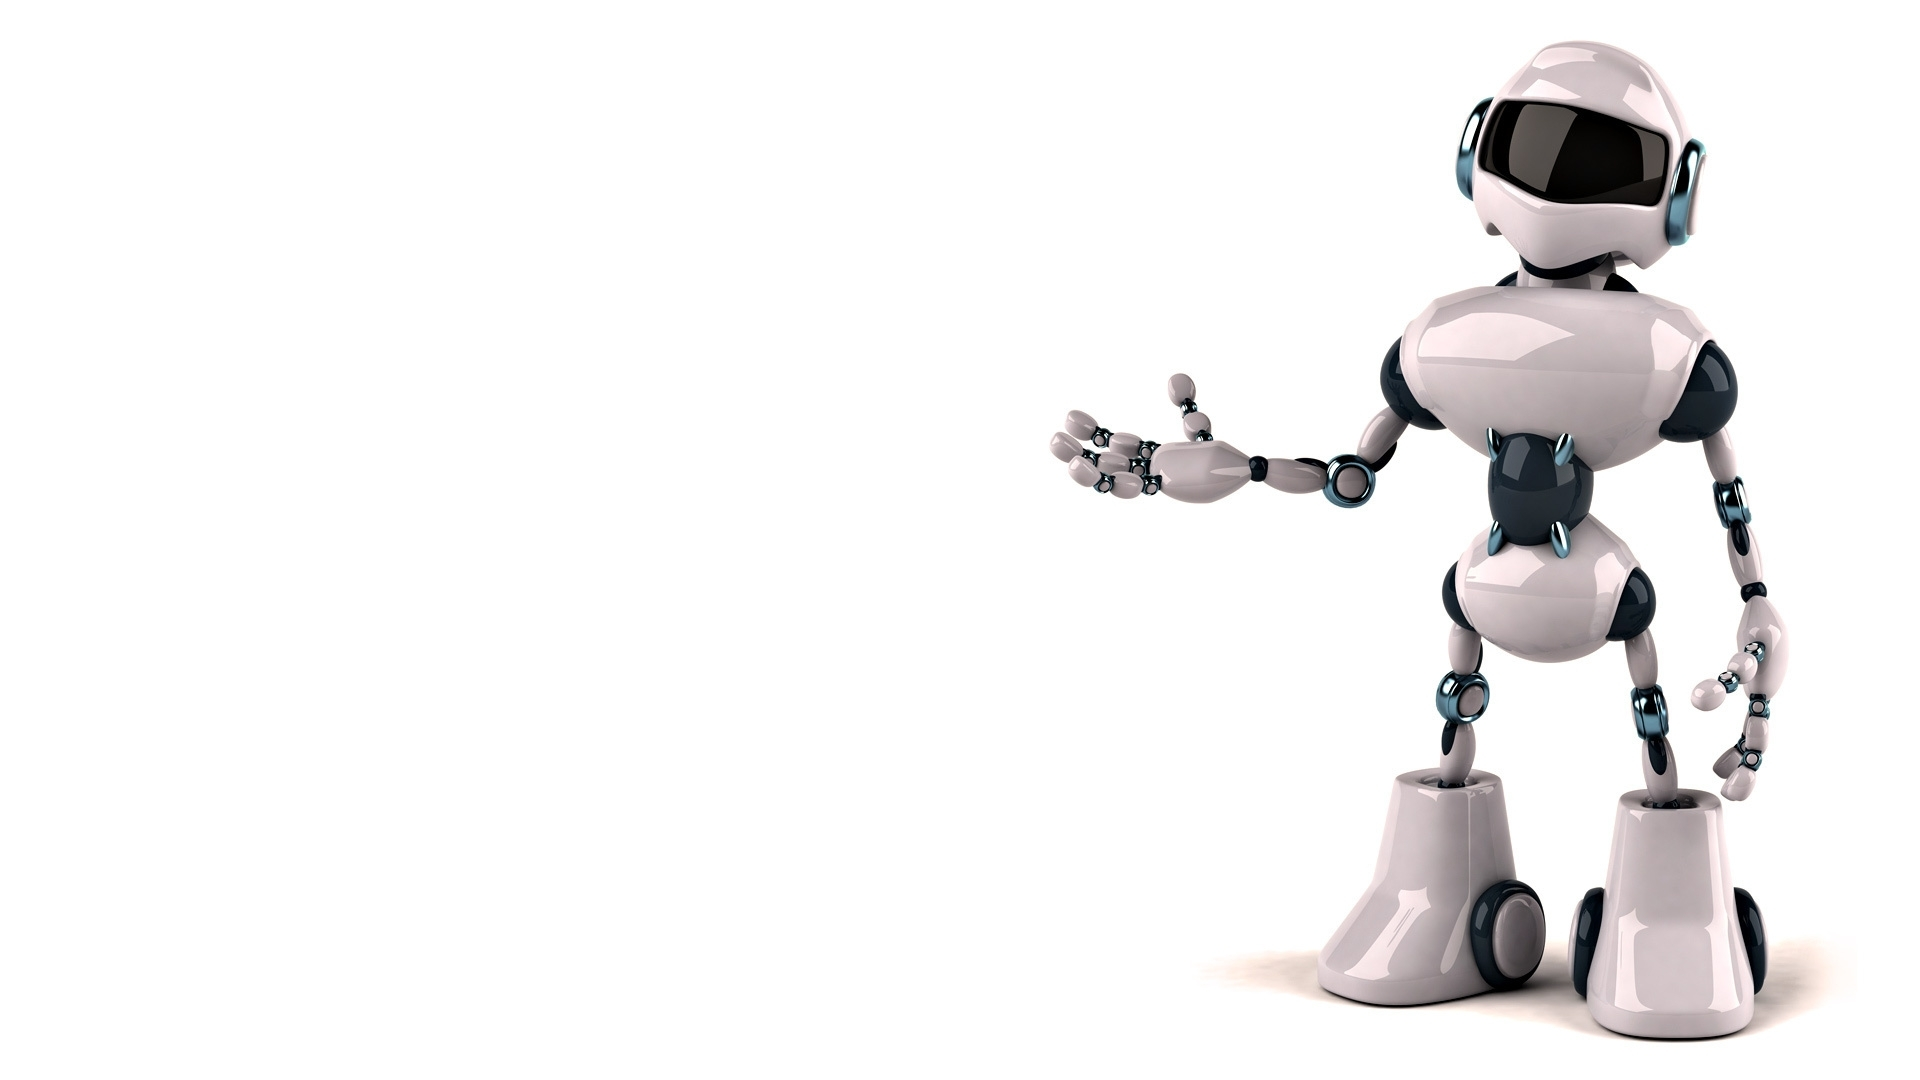 Robot Wallpaper